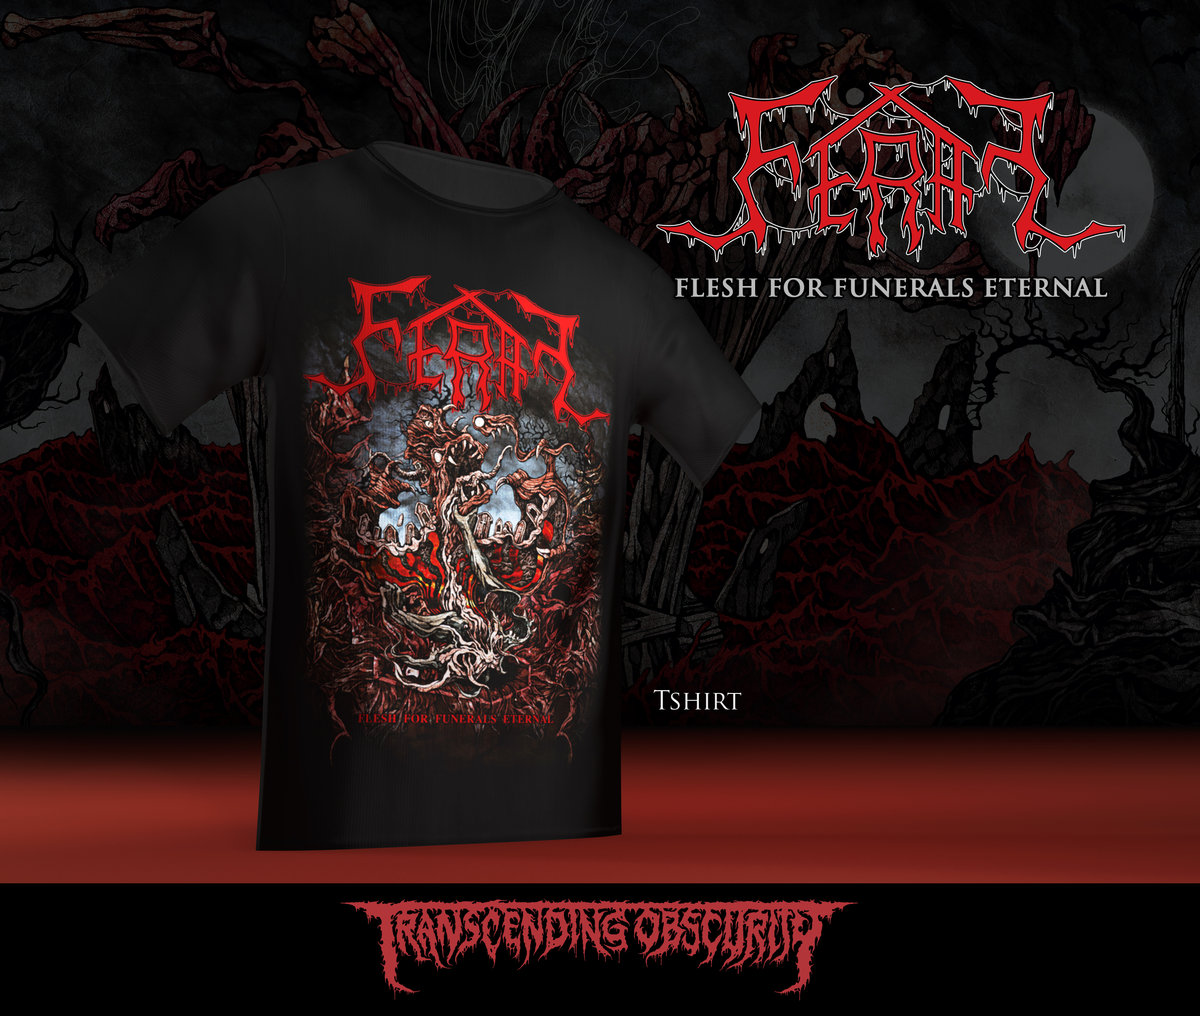 FERAL (Sweden) - 'Flesh For Funerals Eternal' T-shirt (Limited to 50)